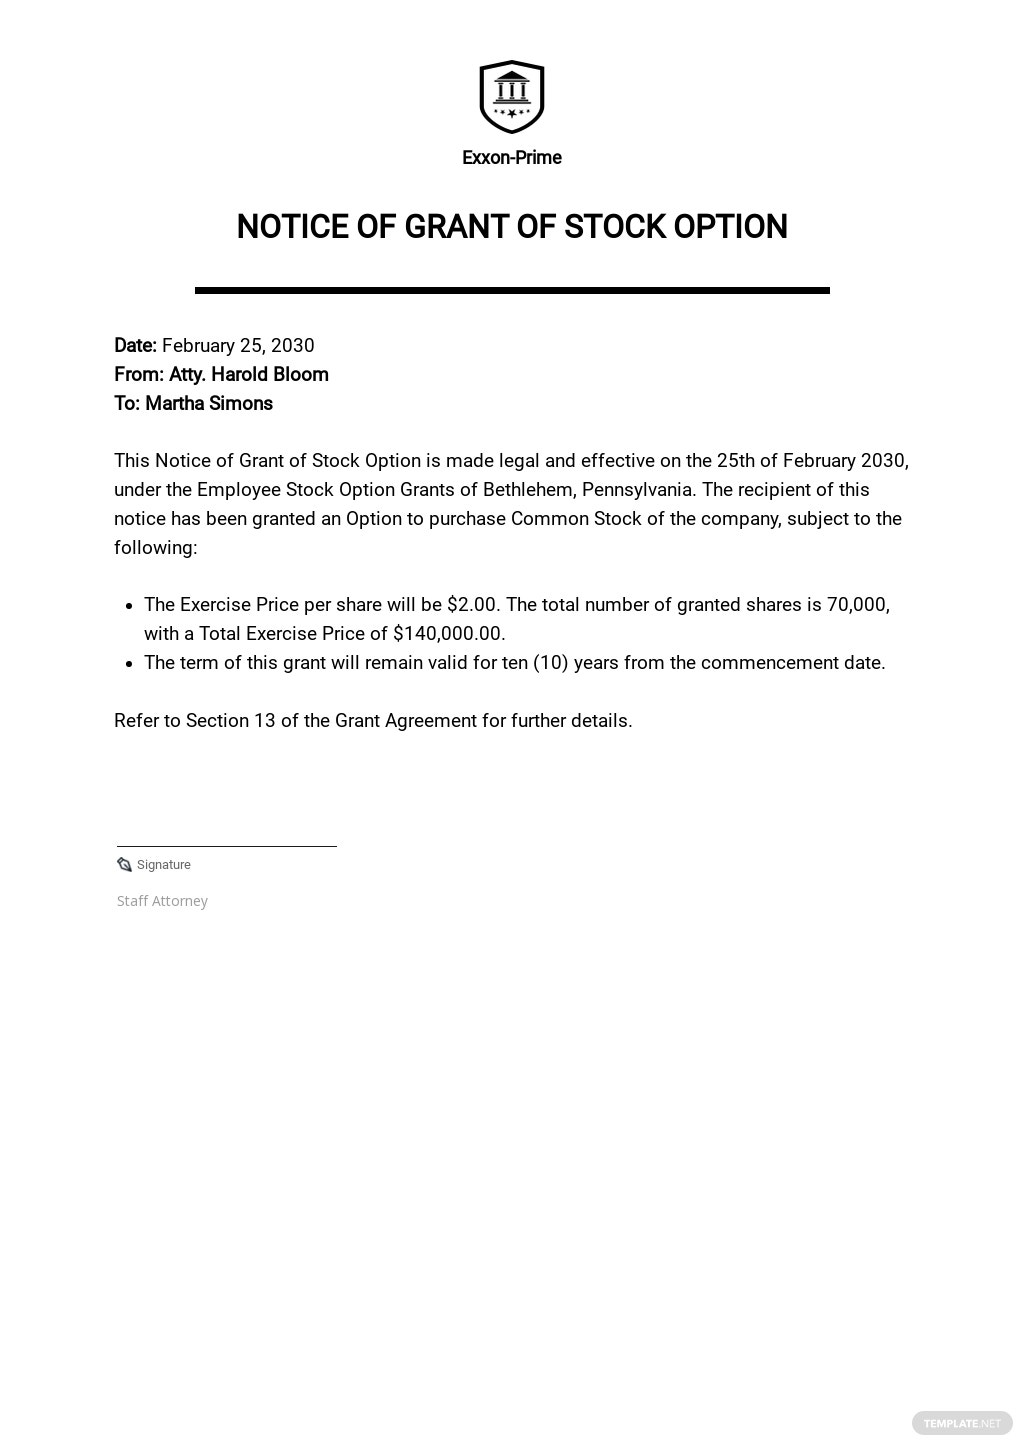 Notice of Grant of Stock Option Template.jpe